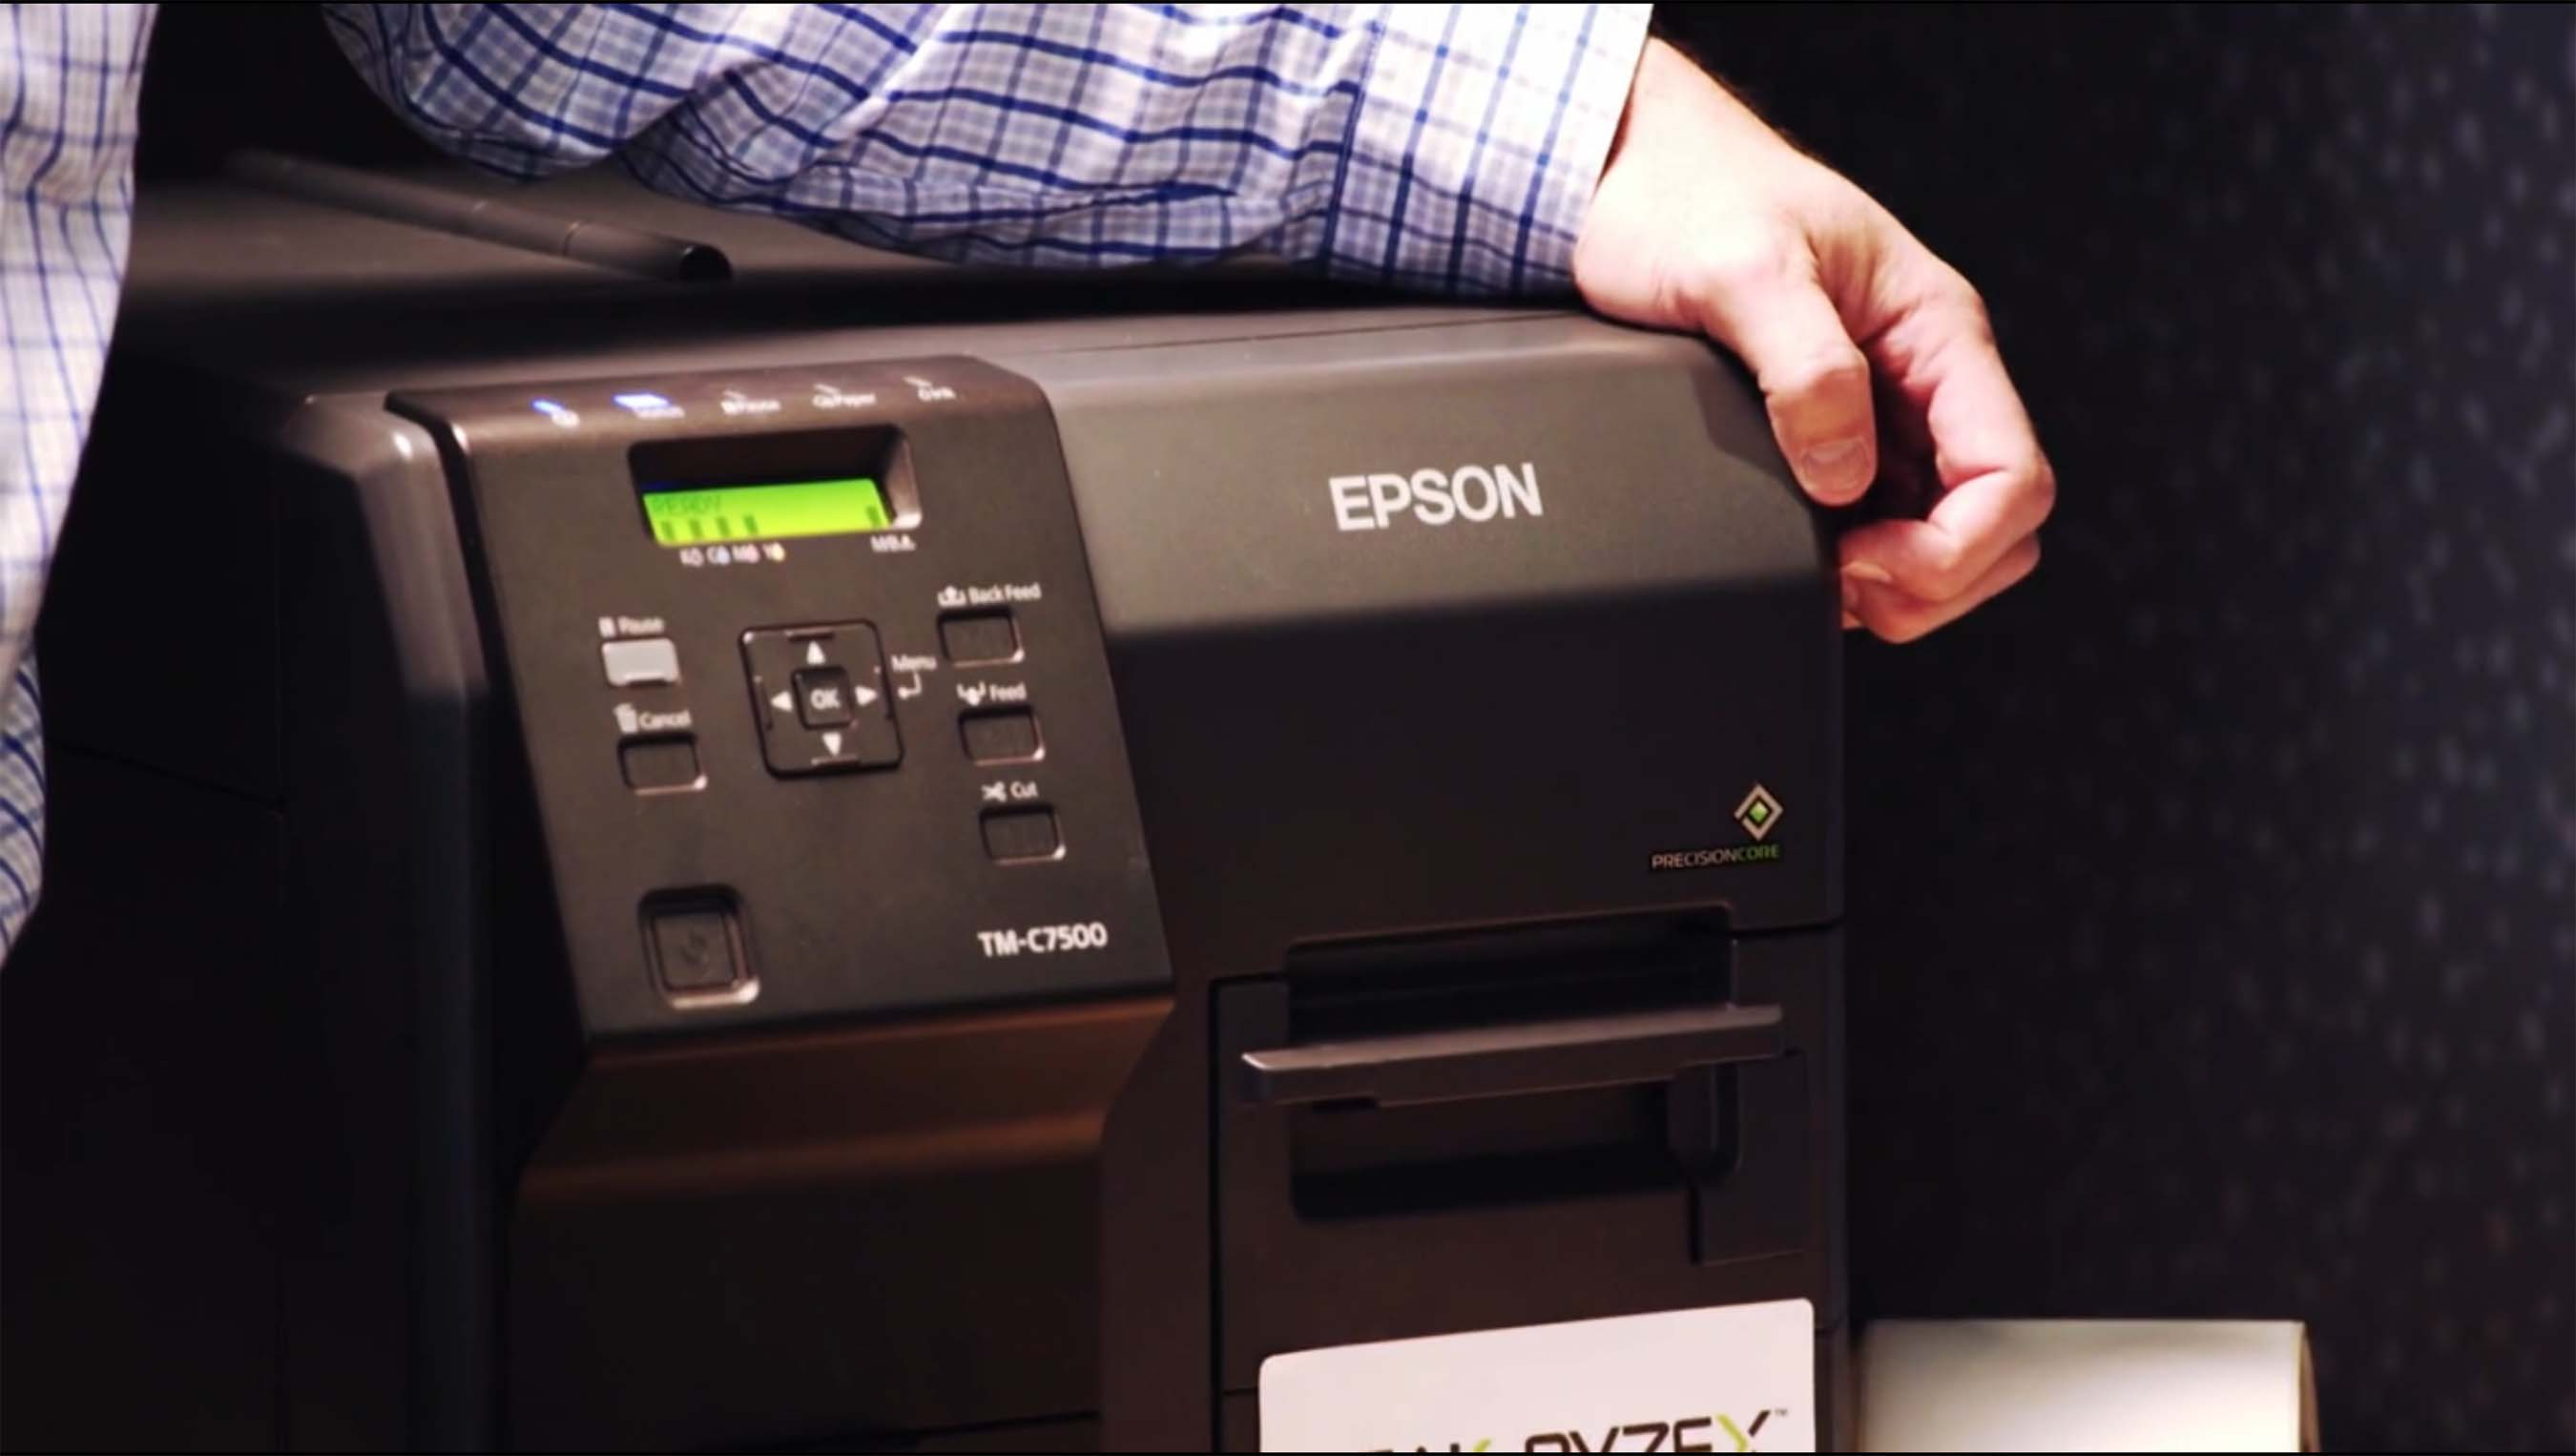 A close up of Millstone Medical's Epson's ColorWorks C7500G inkjet label printer